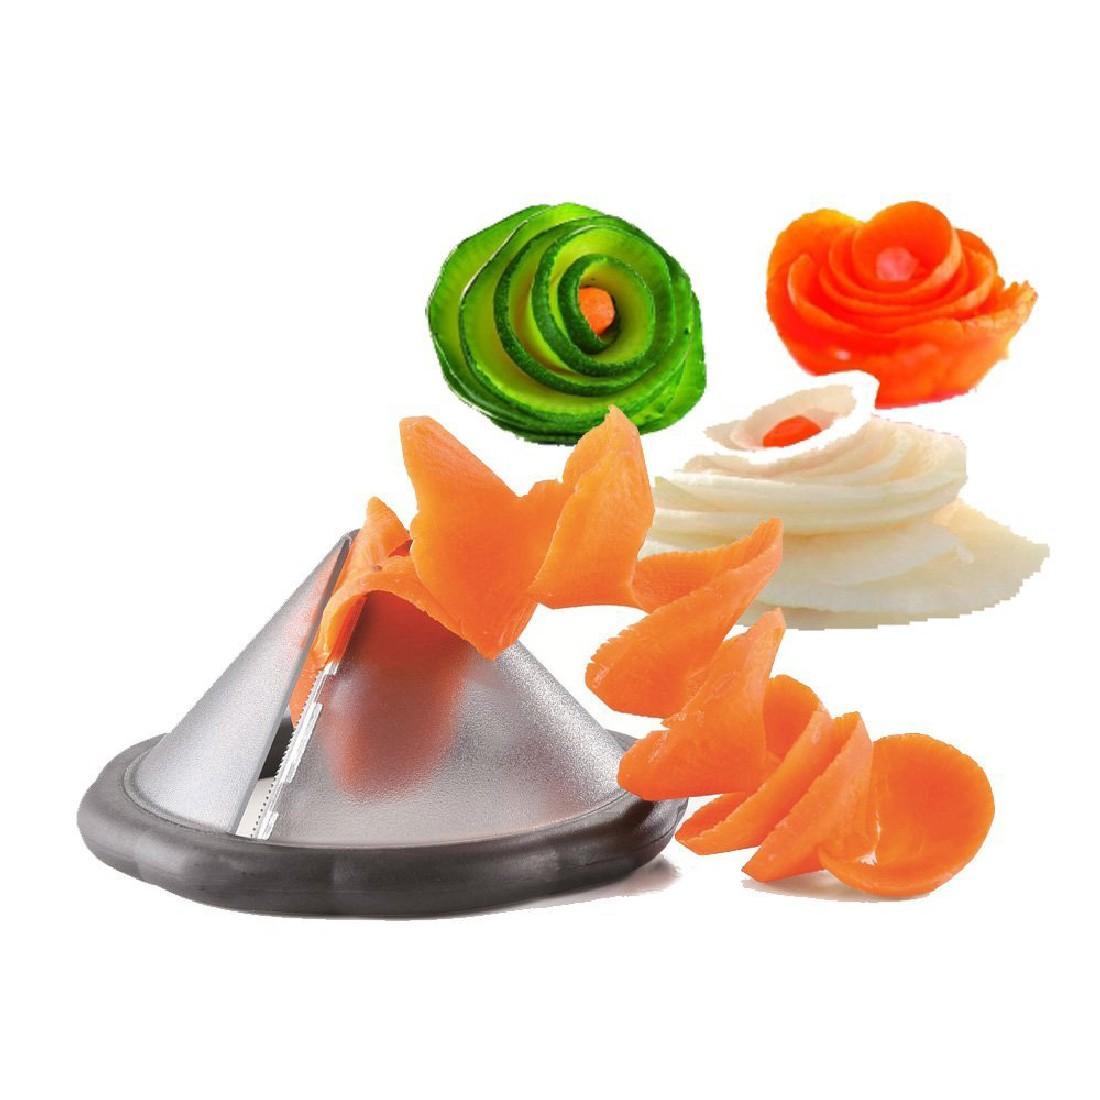 Practical Creative kitchen gadgets vegetable spiral slicer tool kitchen accessories cooking tools Random(China (Mainland))